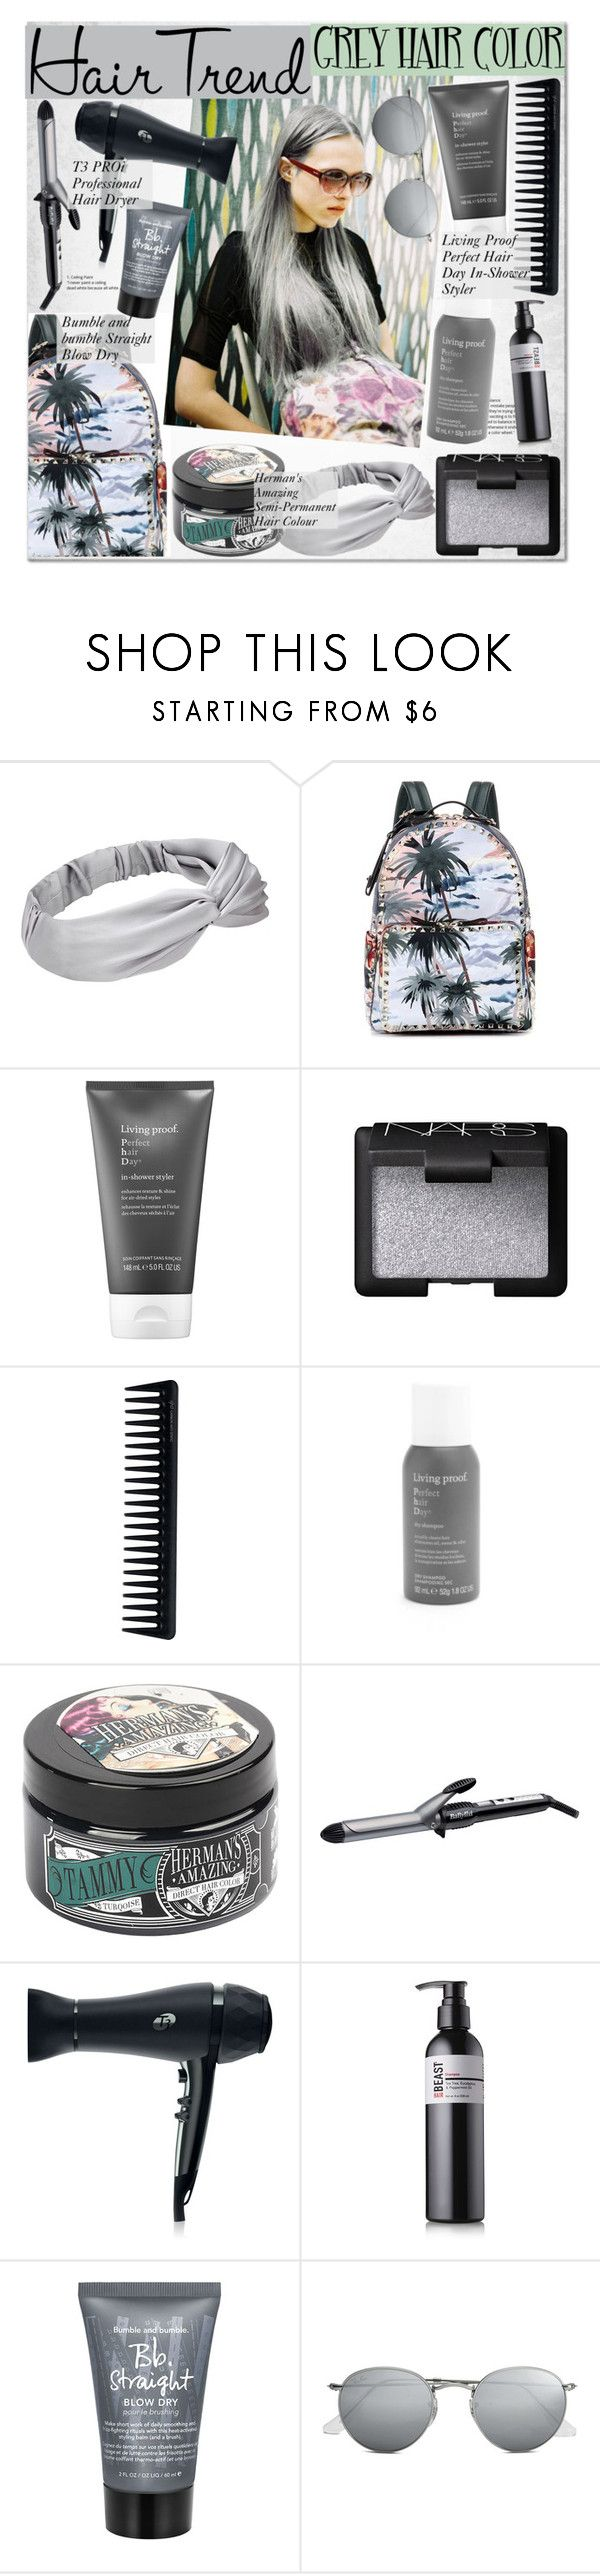 """No 479:Grey Hair Color"" by lovepastel ❤ liked on Polyvore featuring beauty, Valentino, Living Proof, NARS Cosmetics, GHD, BaByliss, T3, Bumble and bumble, Ray-Ban and unicornhair"